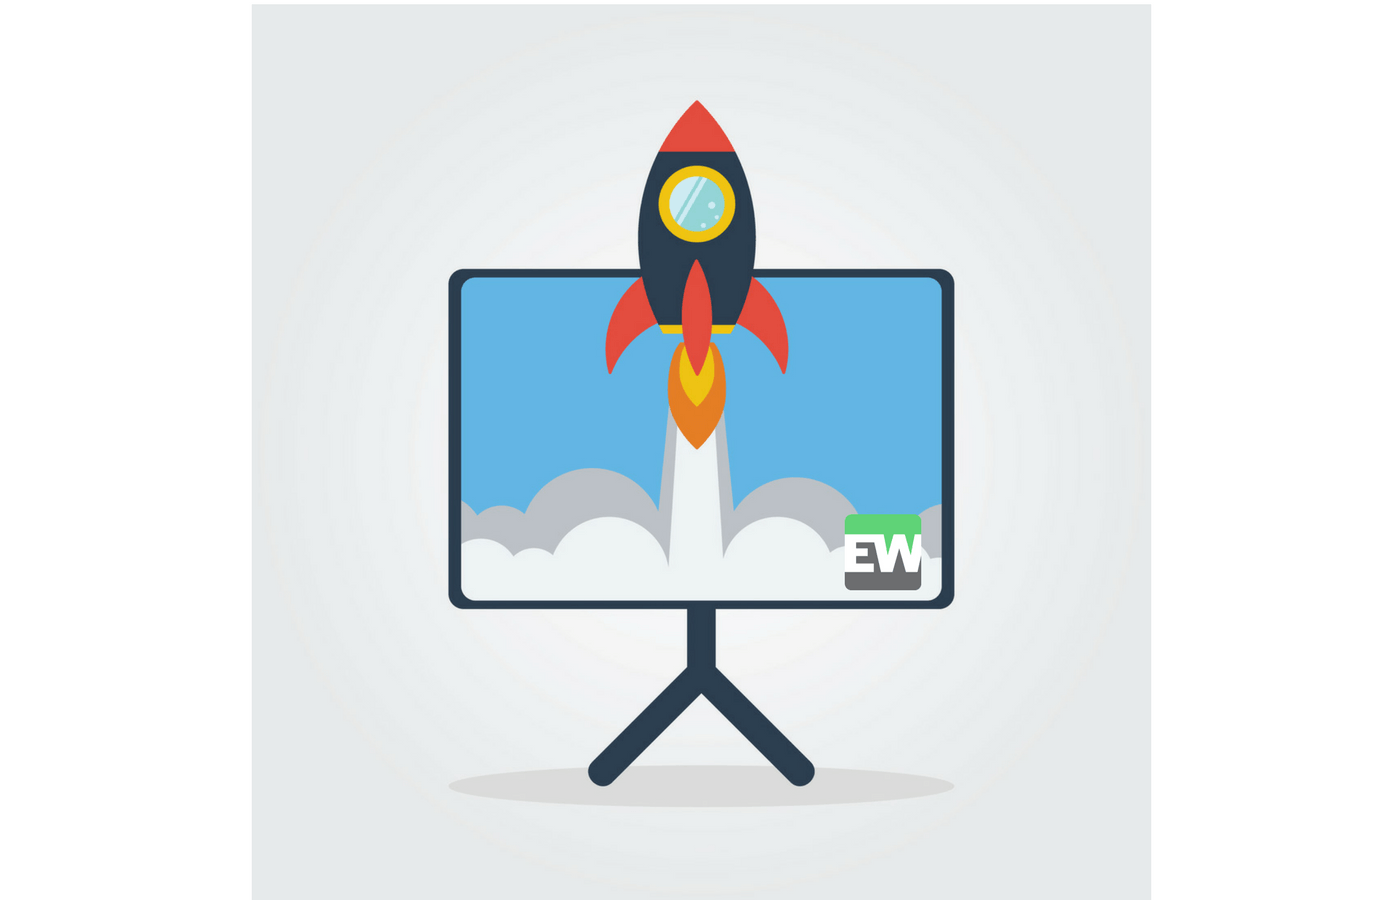 Webinar and VSL Best practices will make your conversions skyrocket